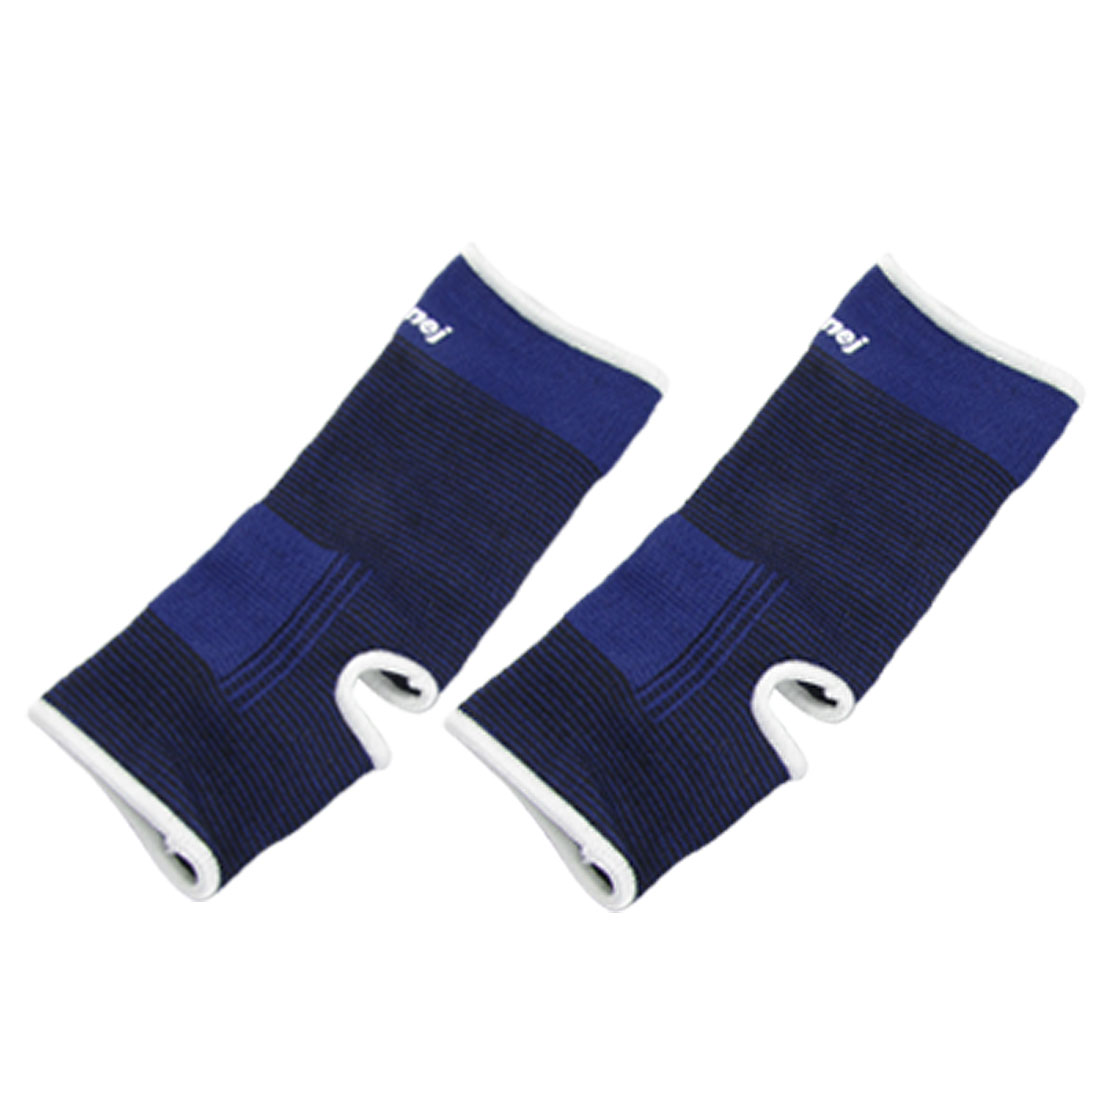 1 Pair Black Blue Pullover Elastic Ankle Support Protector